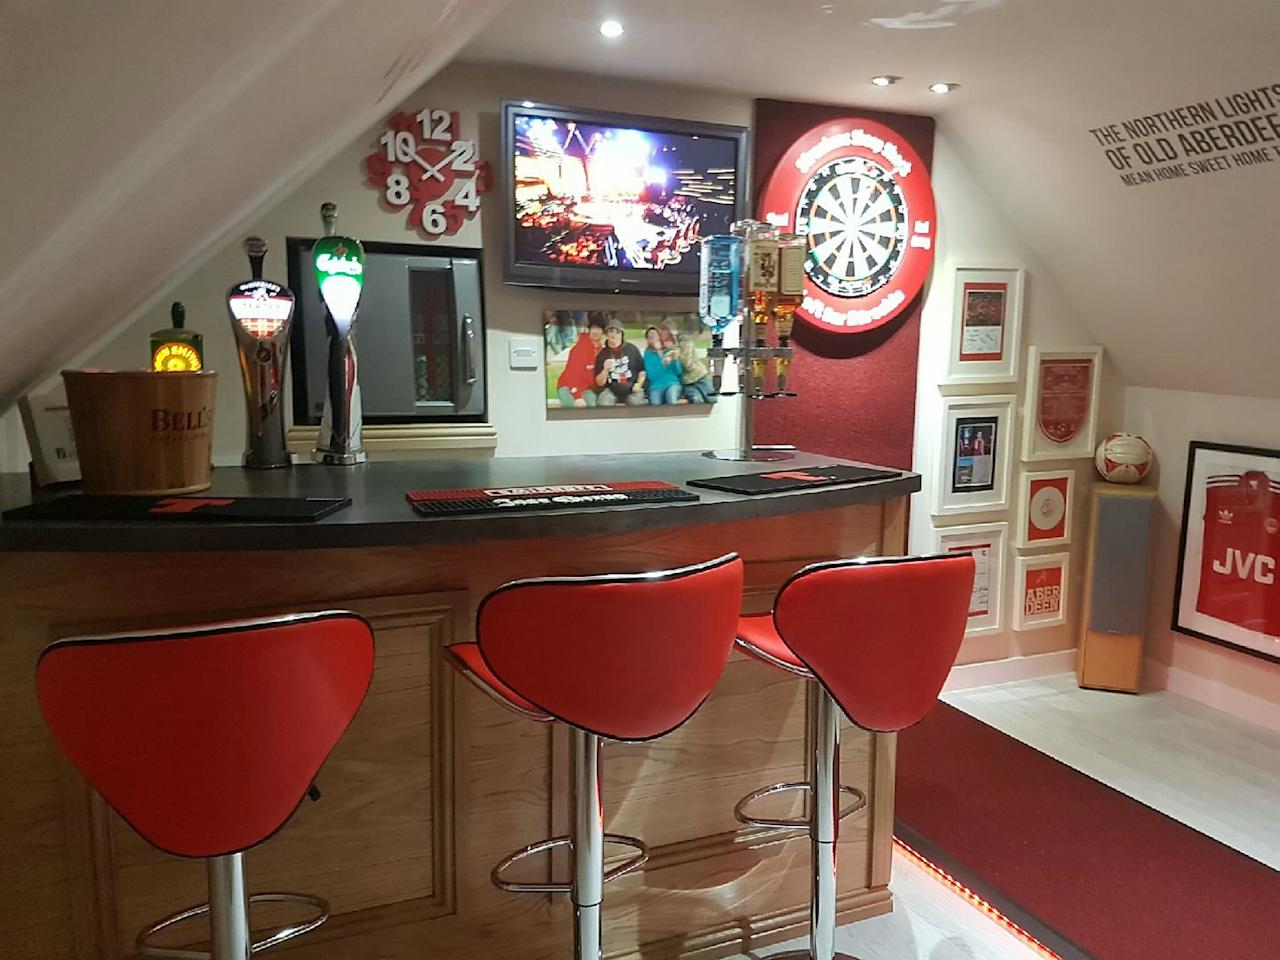 <p>His pals included a plumber, a joiner, an electrician and a painter, who helped him build the man cave over a number of weekends. </p>